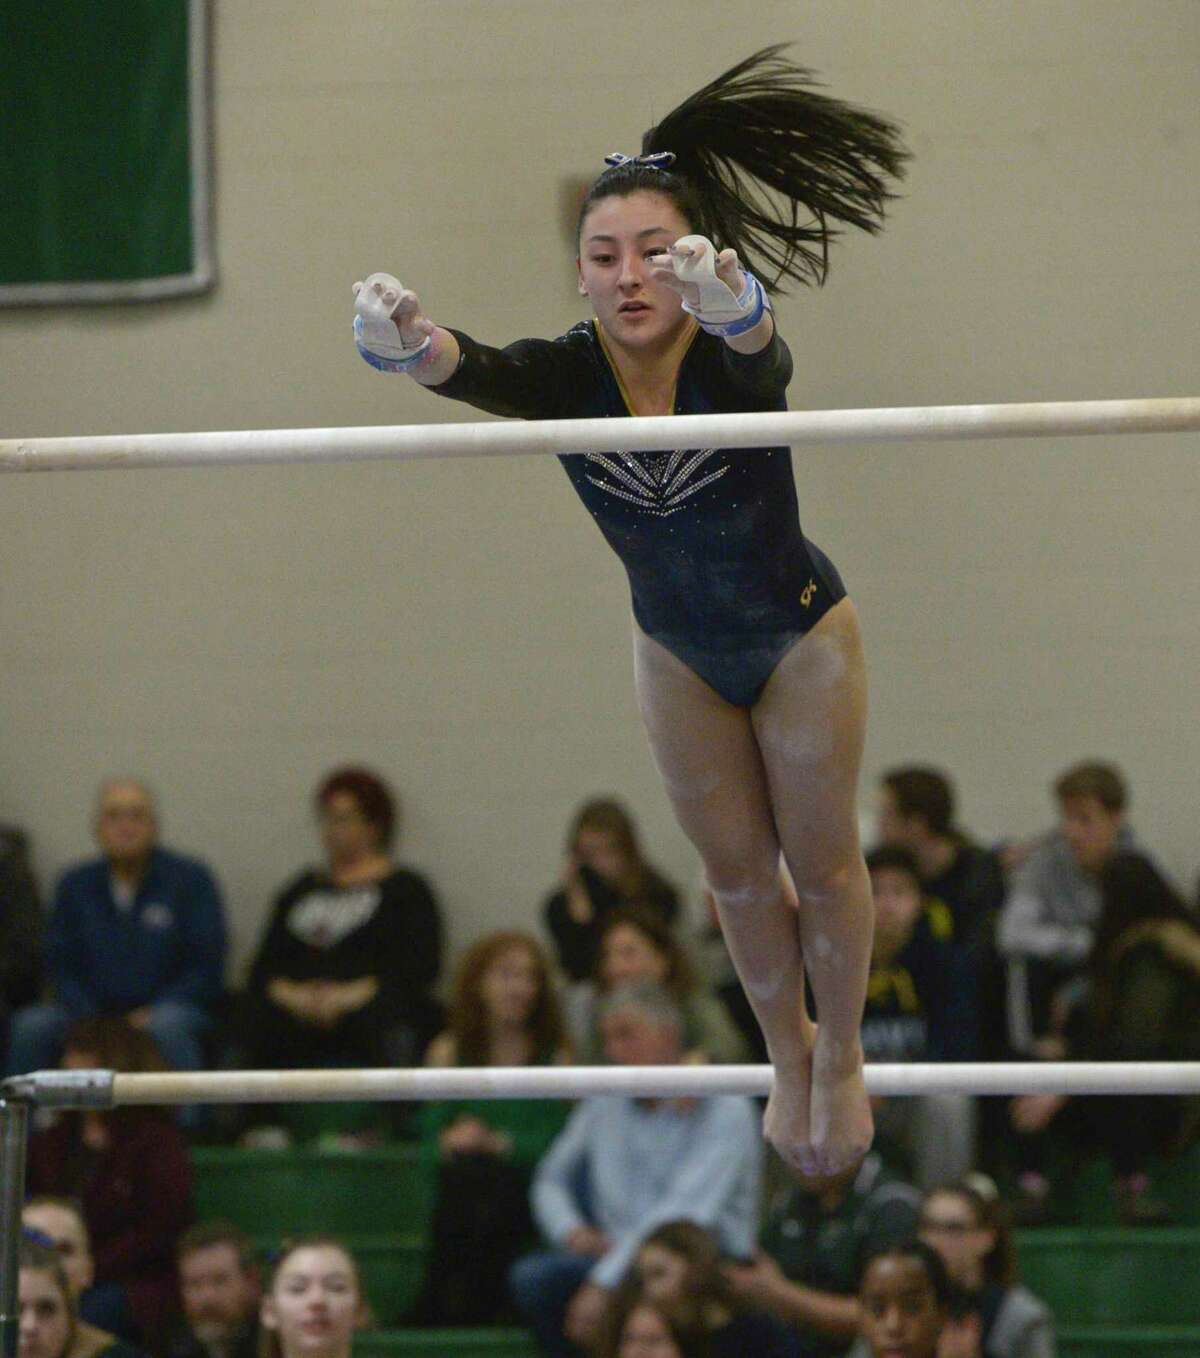 Newtown High School's Marisa Choi competes in the uneven bars during the SWC gymnastics championships, Thursday night, February 13, 202, at New Milford High School, New Milford, Conn.